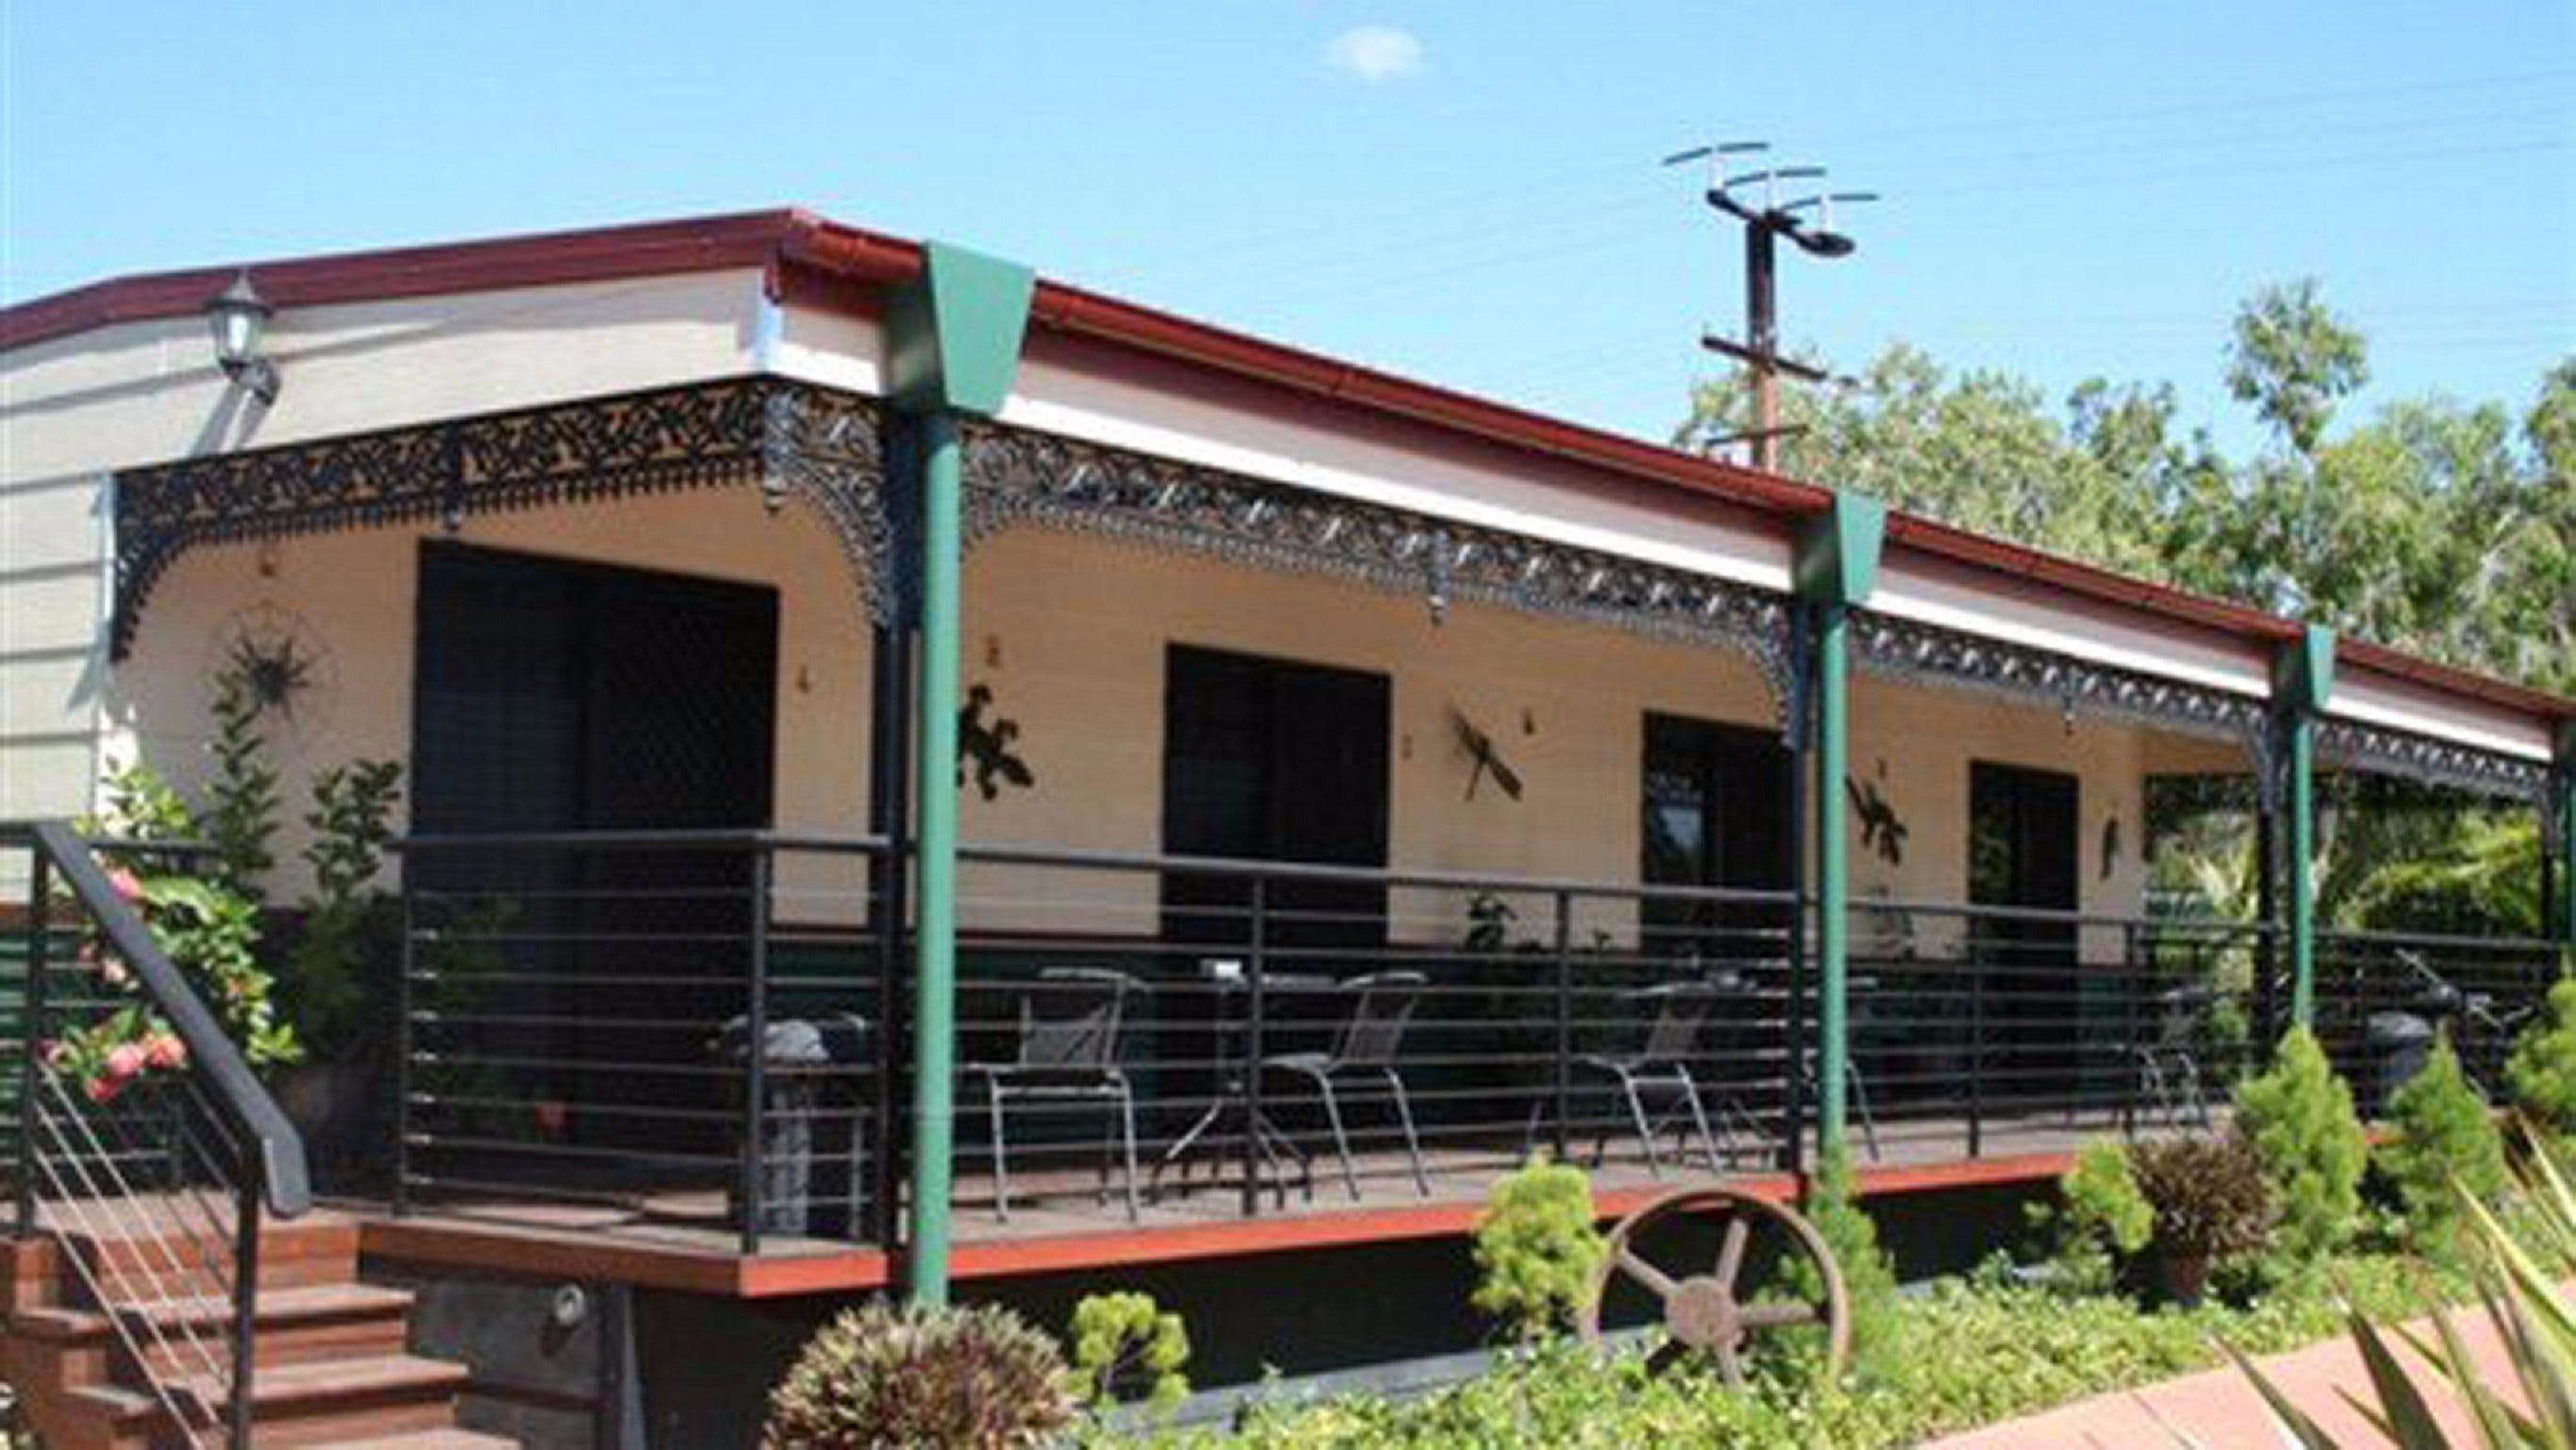 Pine Creek Railway Resort - Whitsundays Accommodation